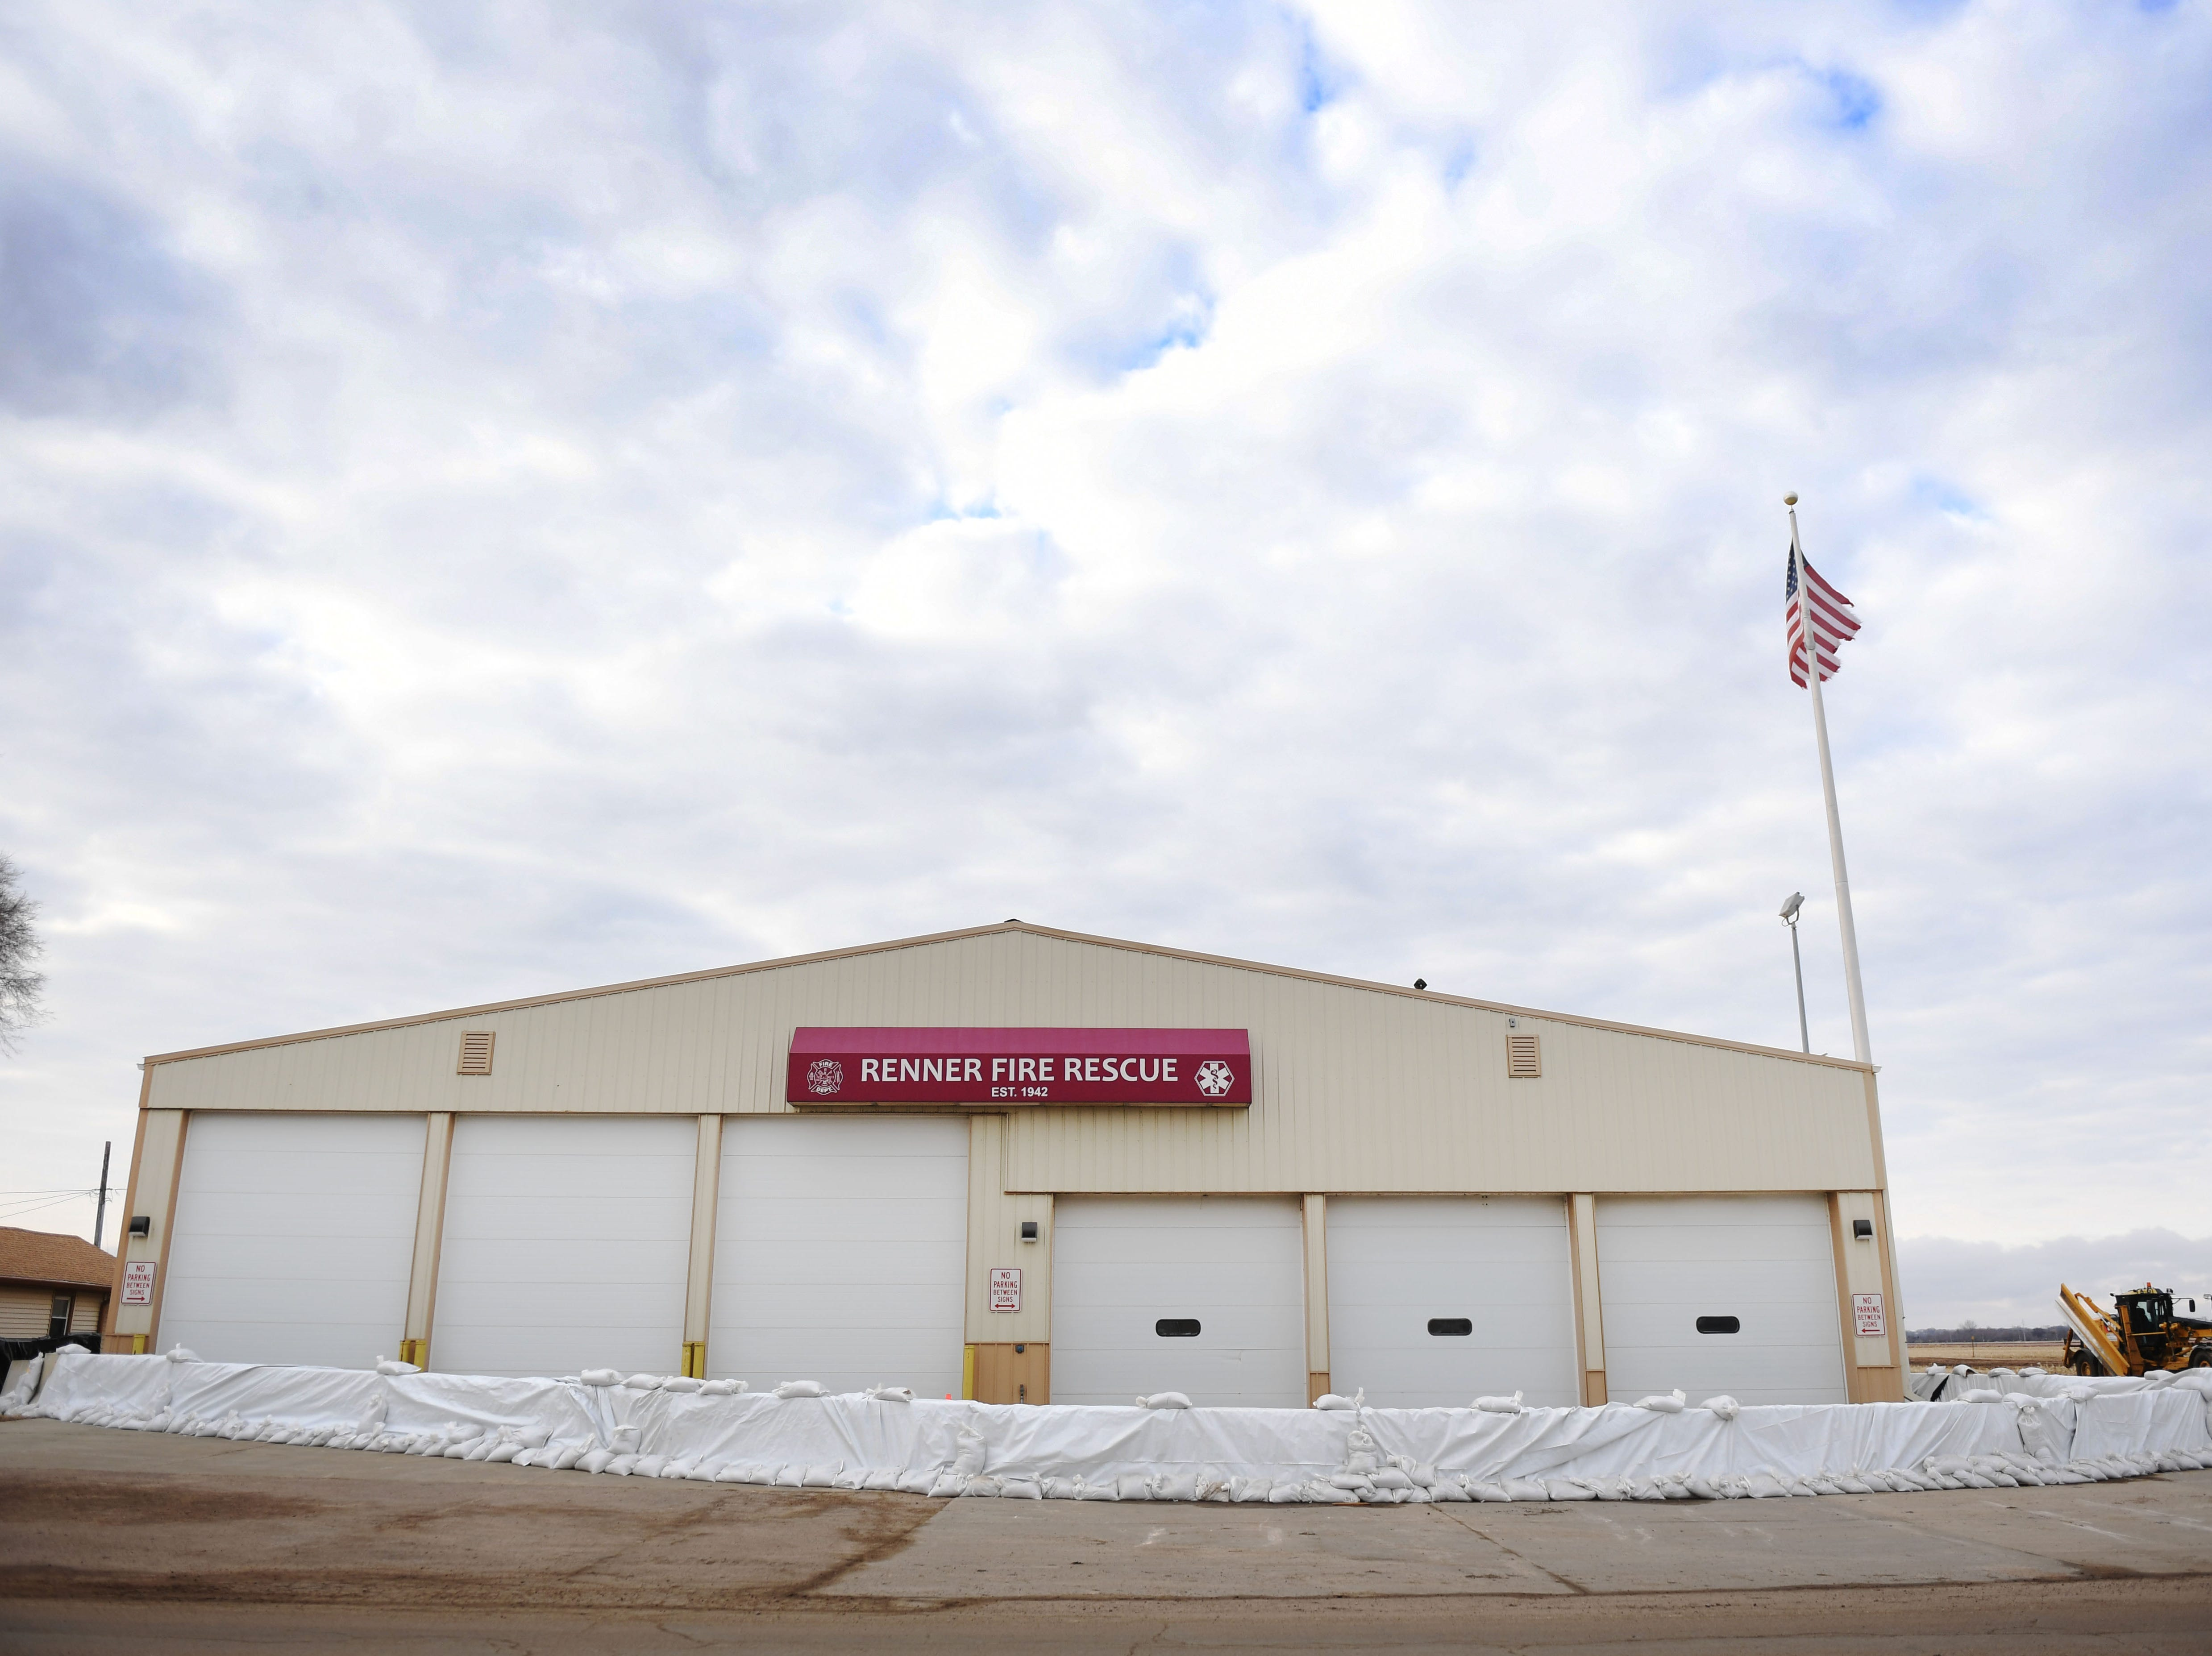 Renner Fire Rescue building is surrounded by sandbags to prevent flooding in Renner Monday, March 25, in Renner, S.D.